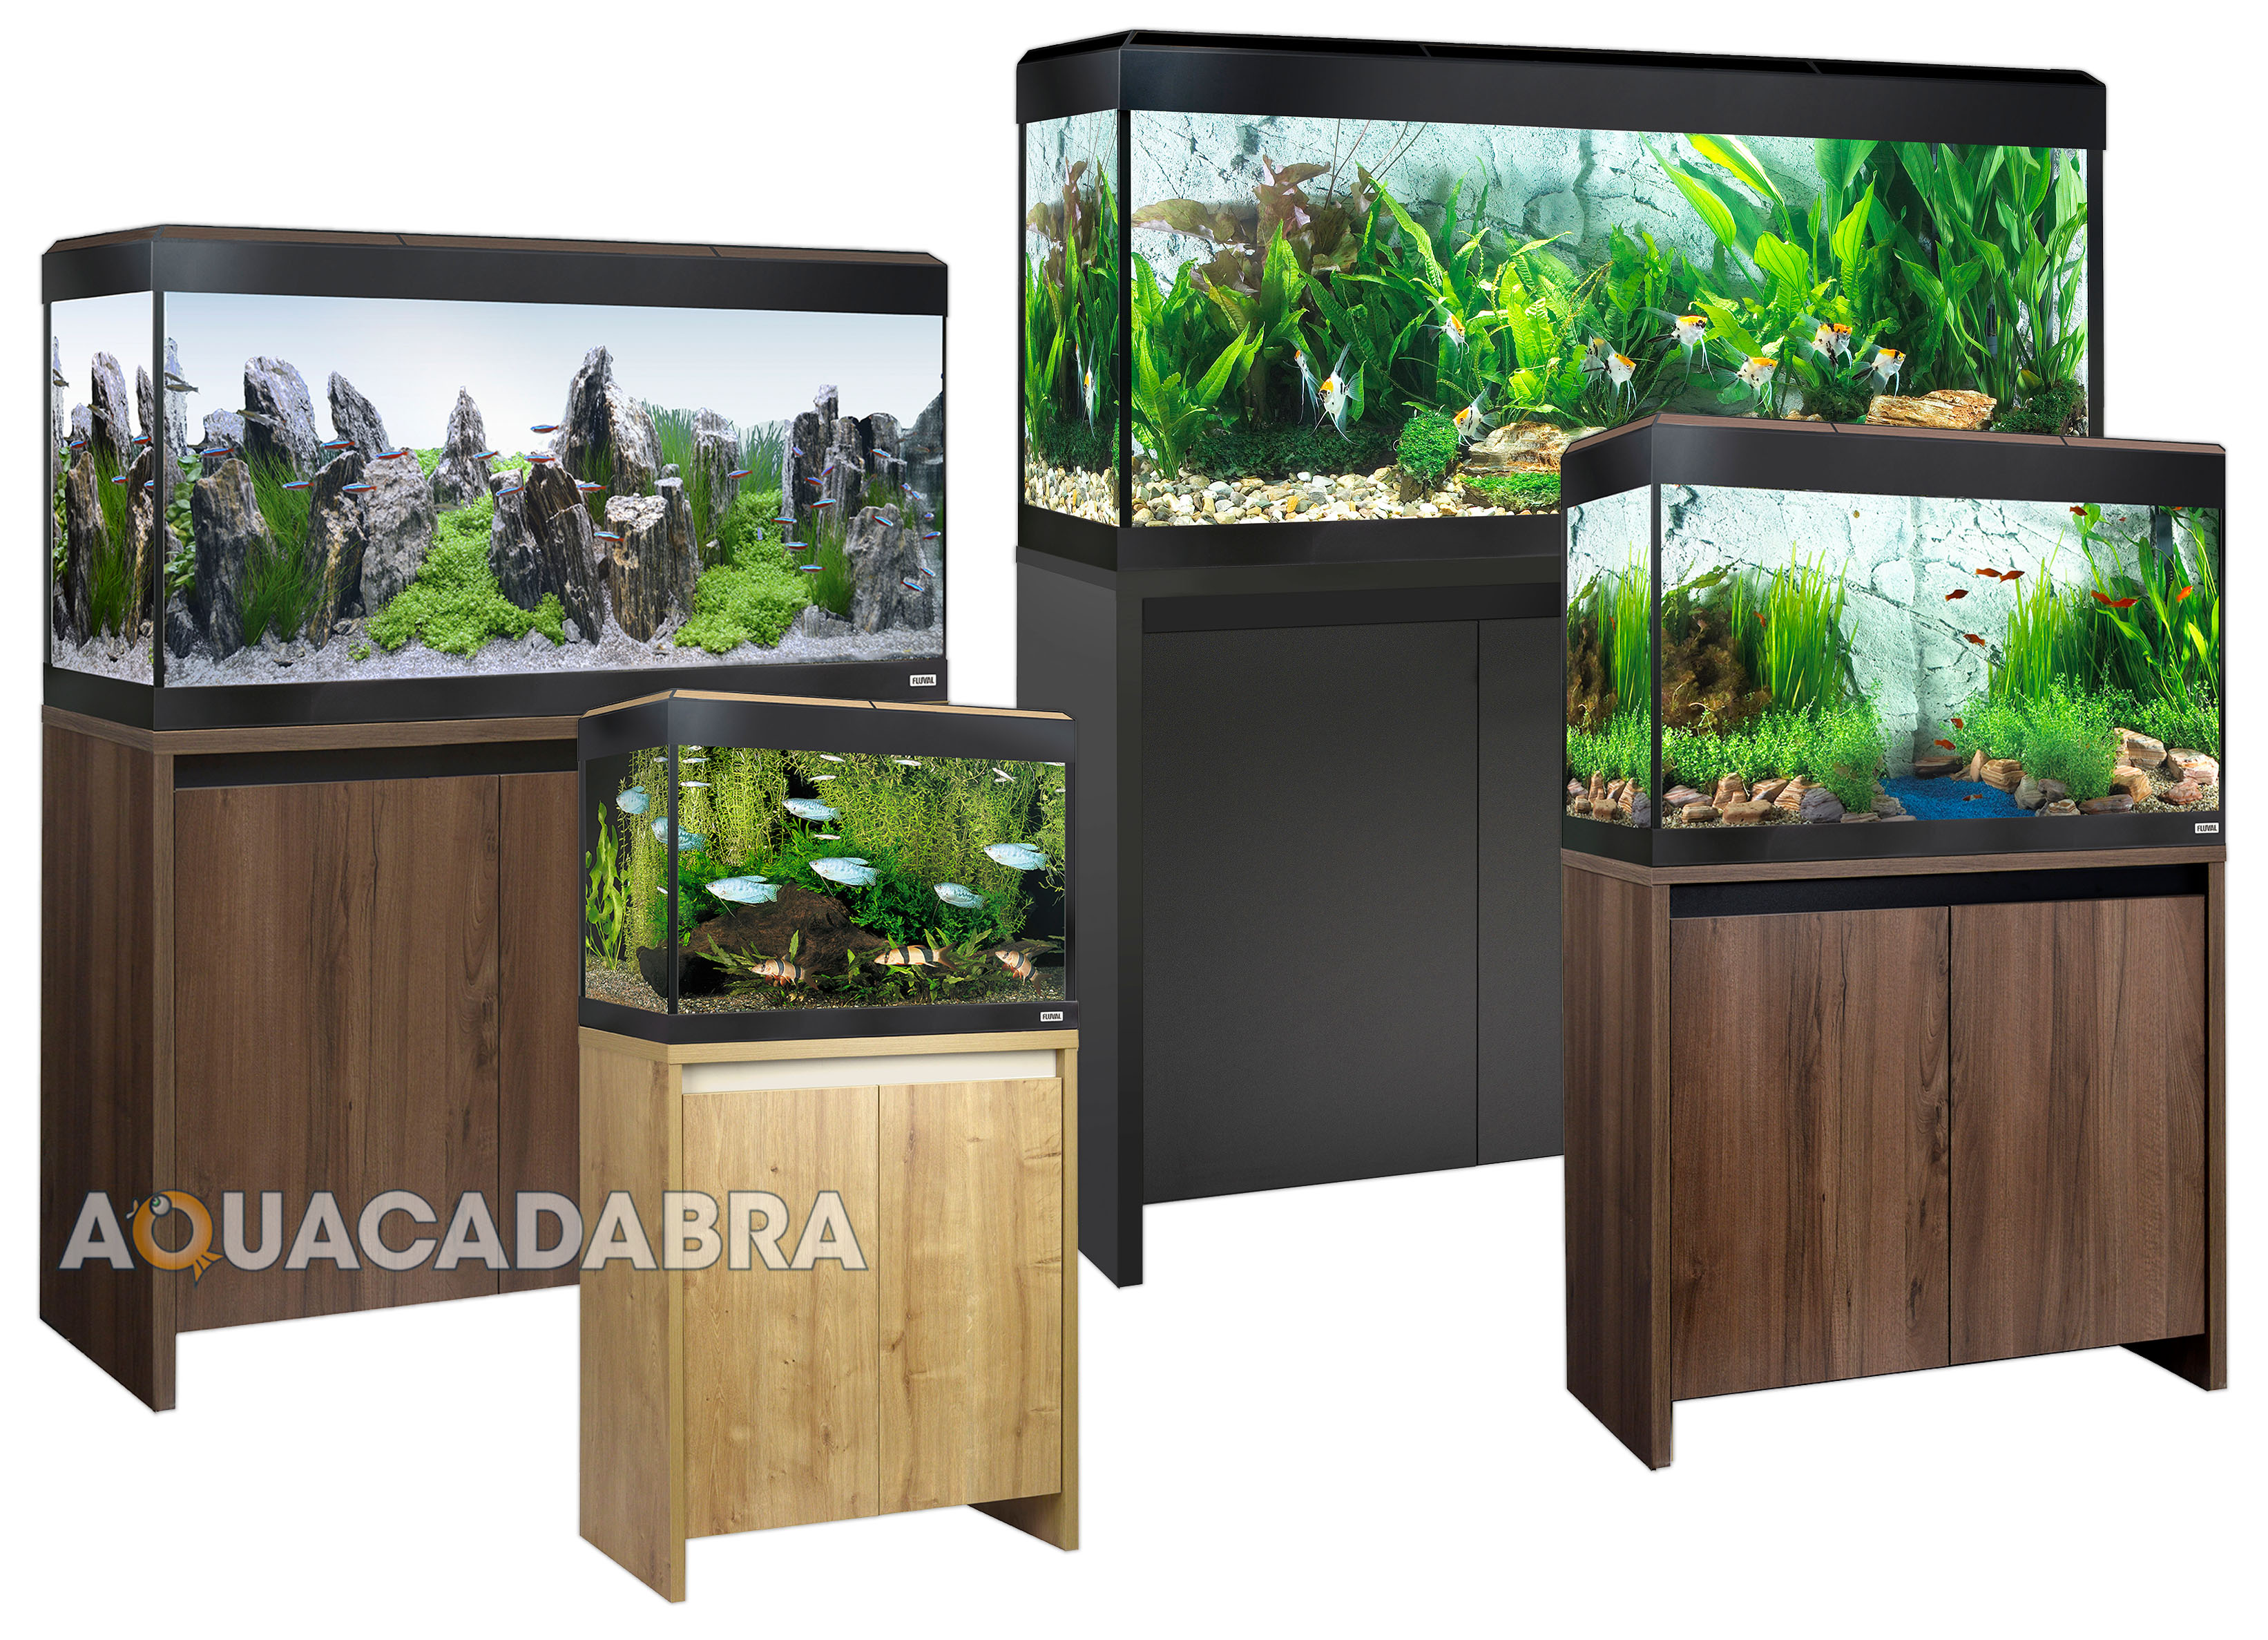 Fluval roma led aquariums 90 125 200 240l oak walnut black for 20 gallon fish tank size